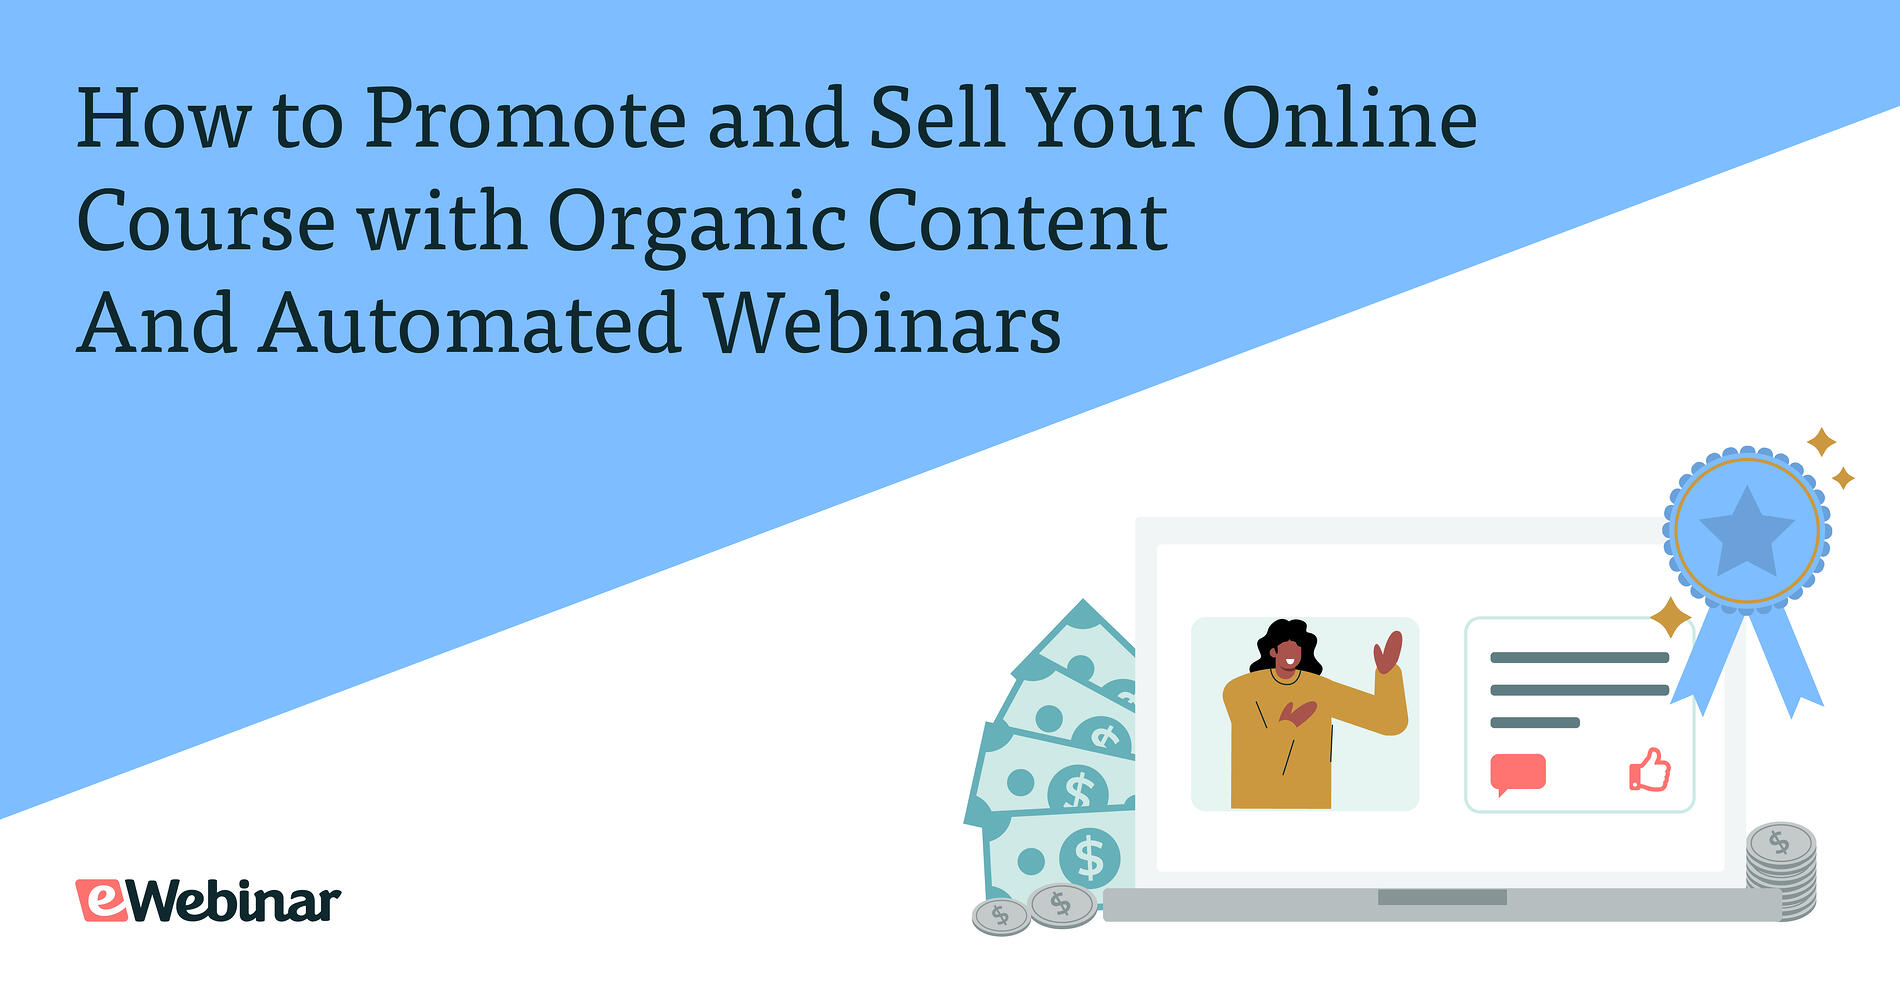 How to Promote and Sell Your Online Course with Organic Content and Automated Webinars